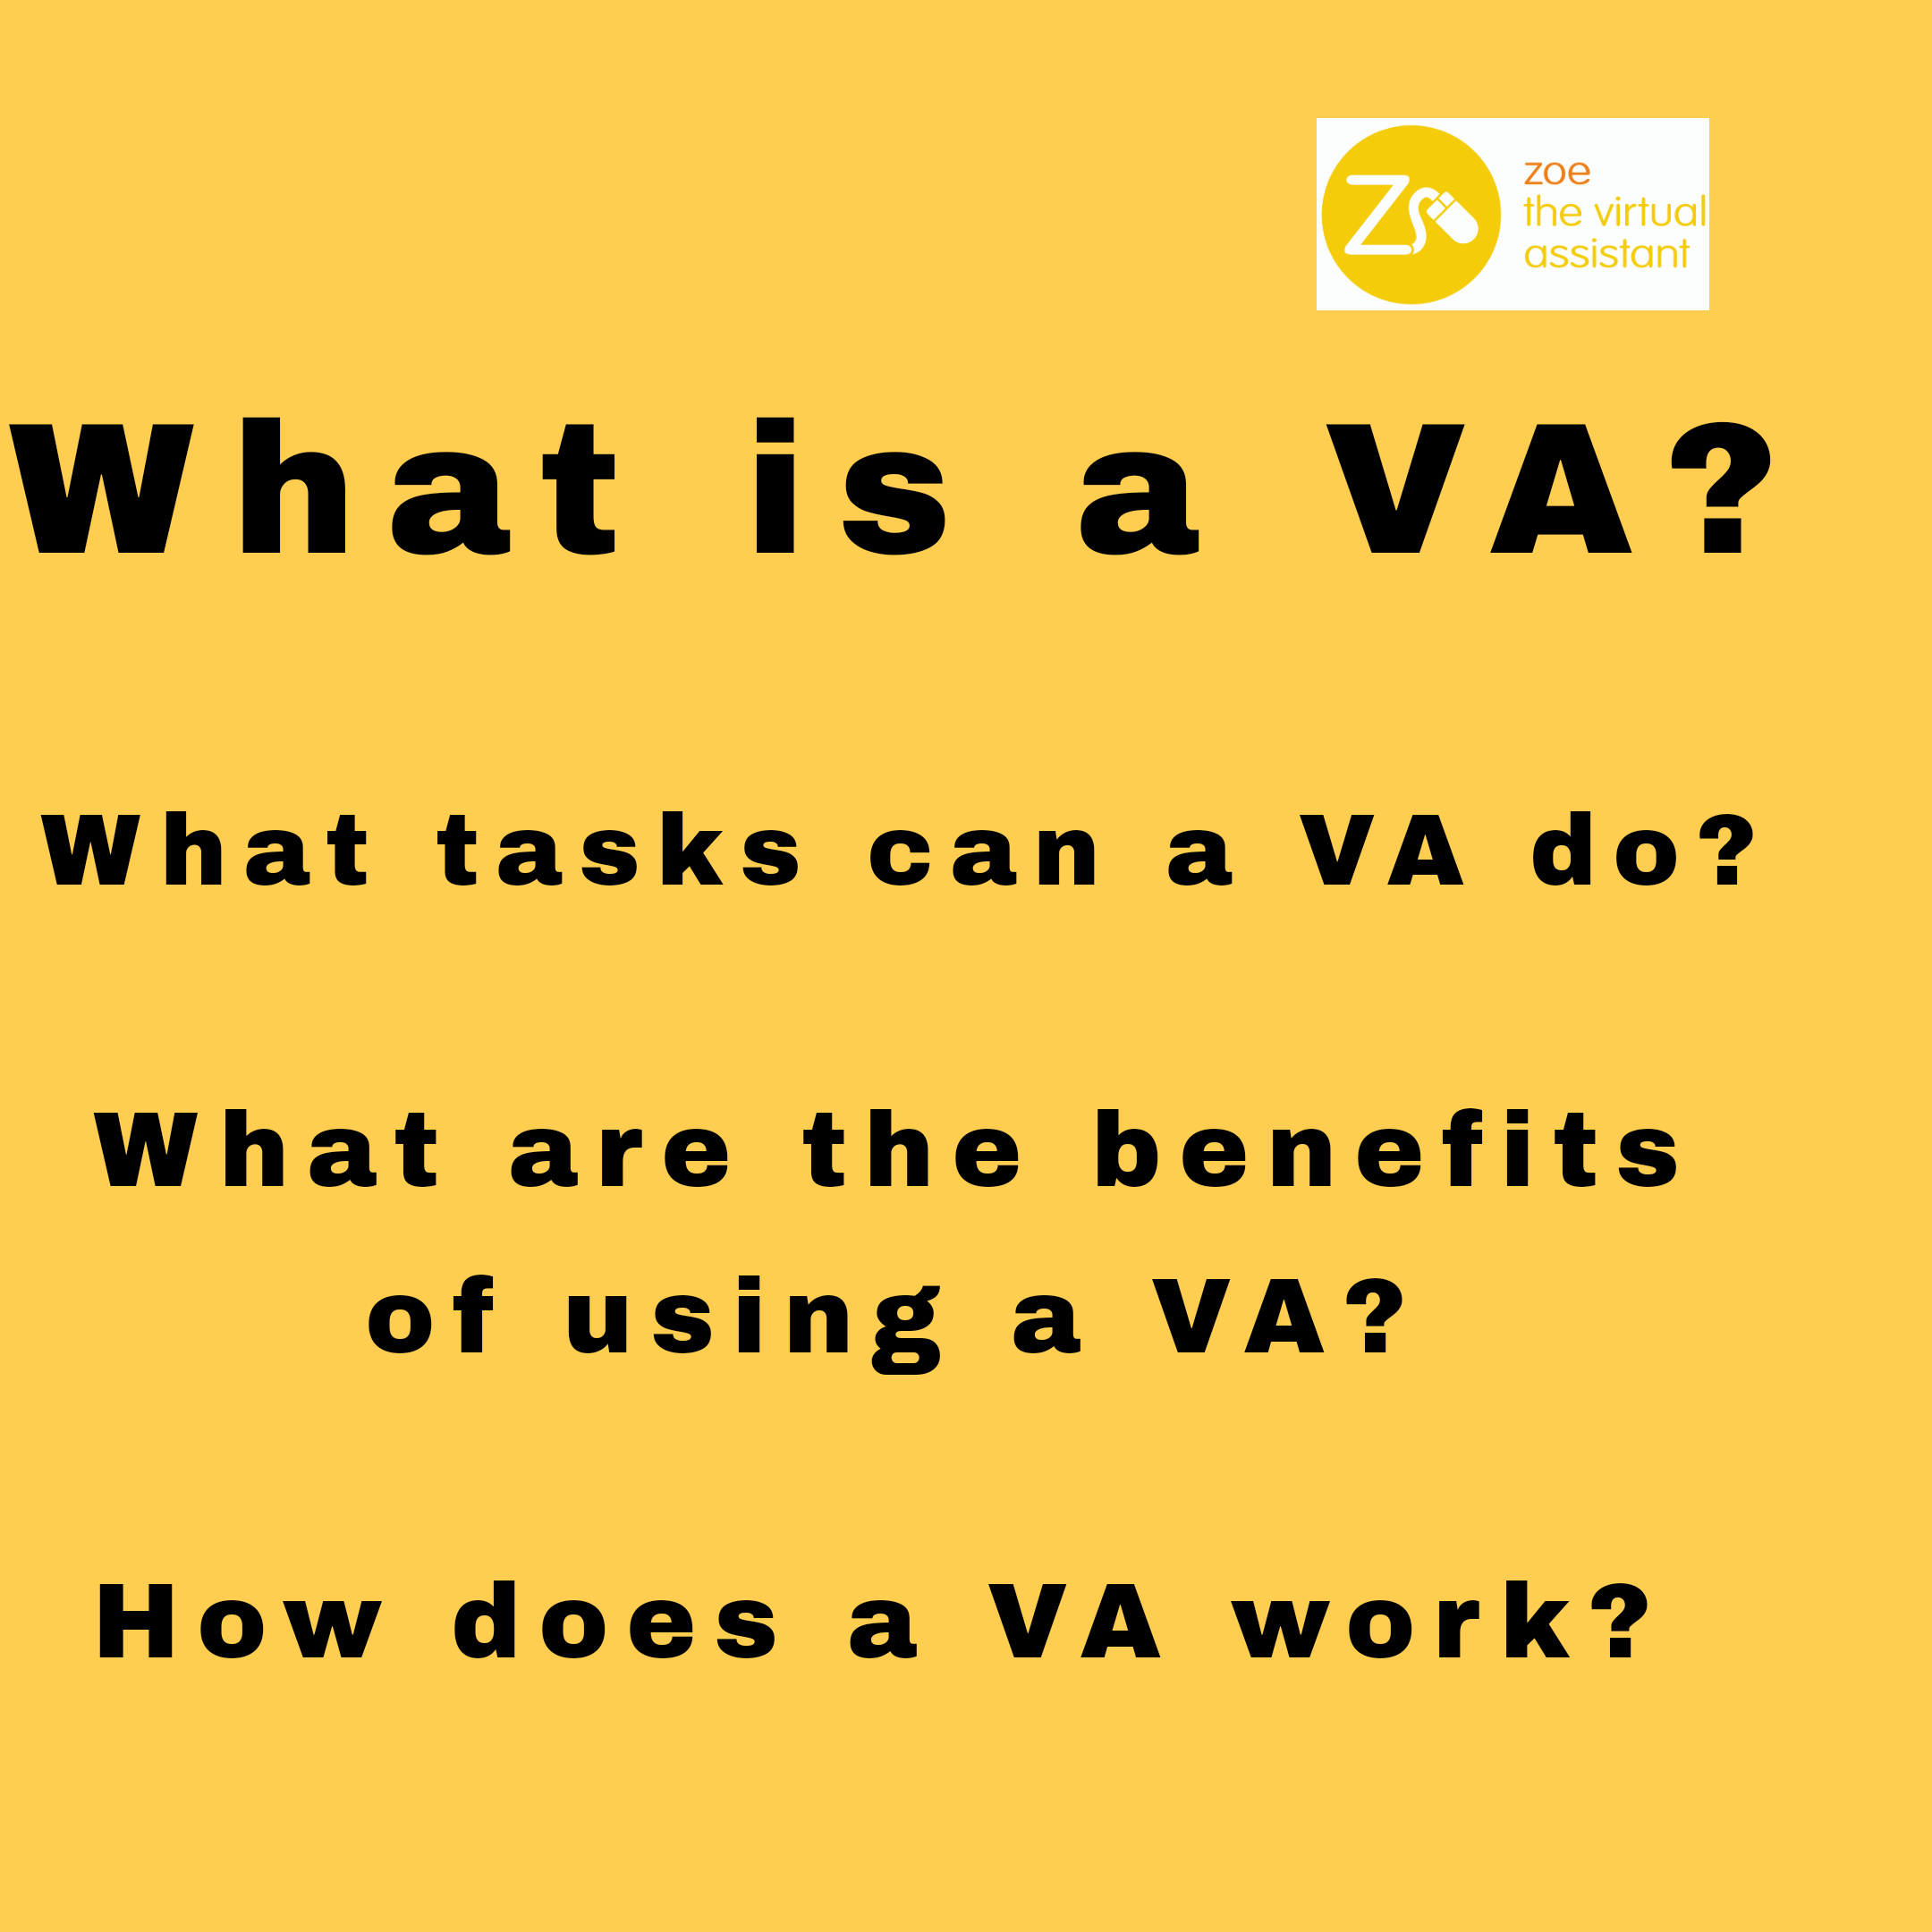 Image of text what is a VA?